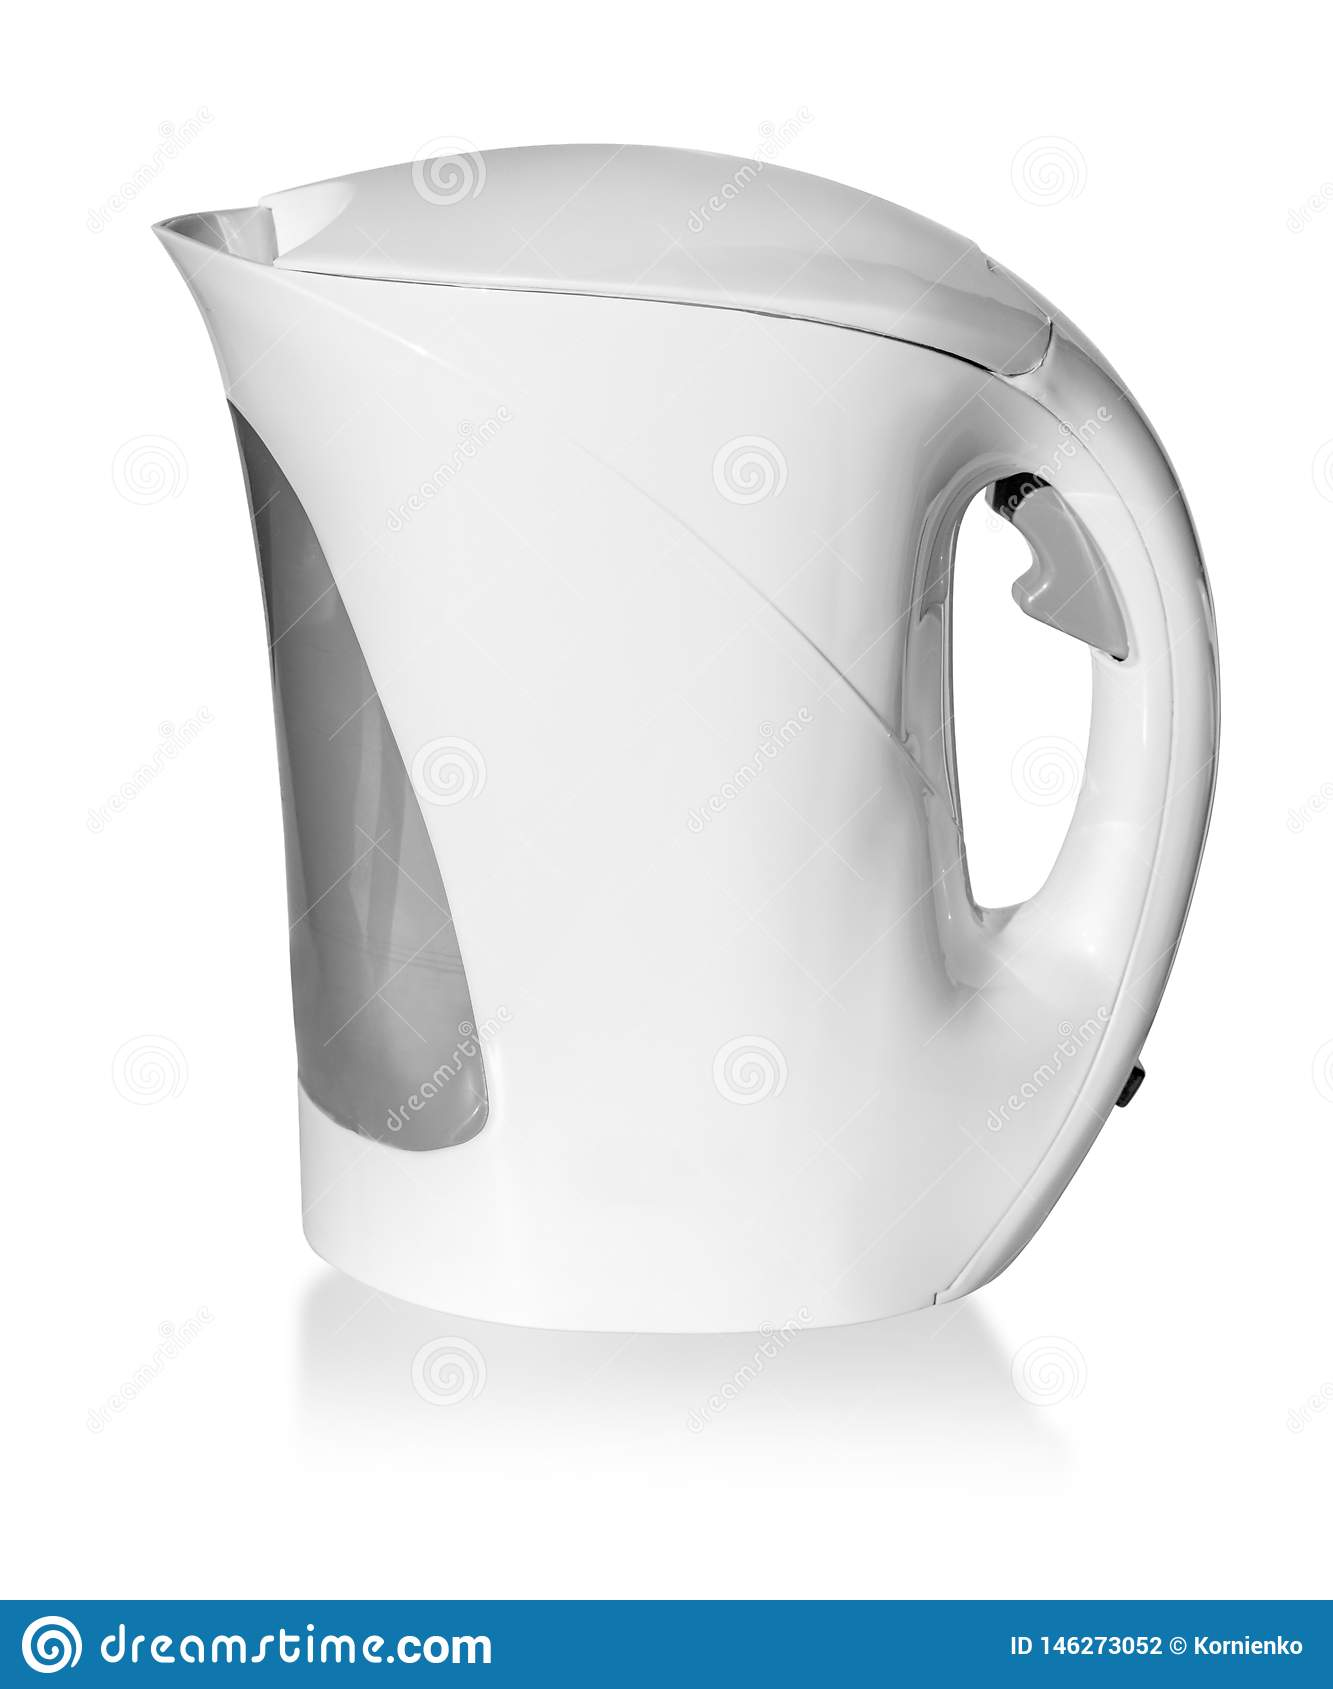 White, plastic electric kettle isolated